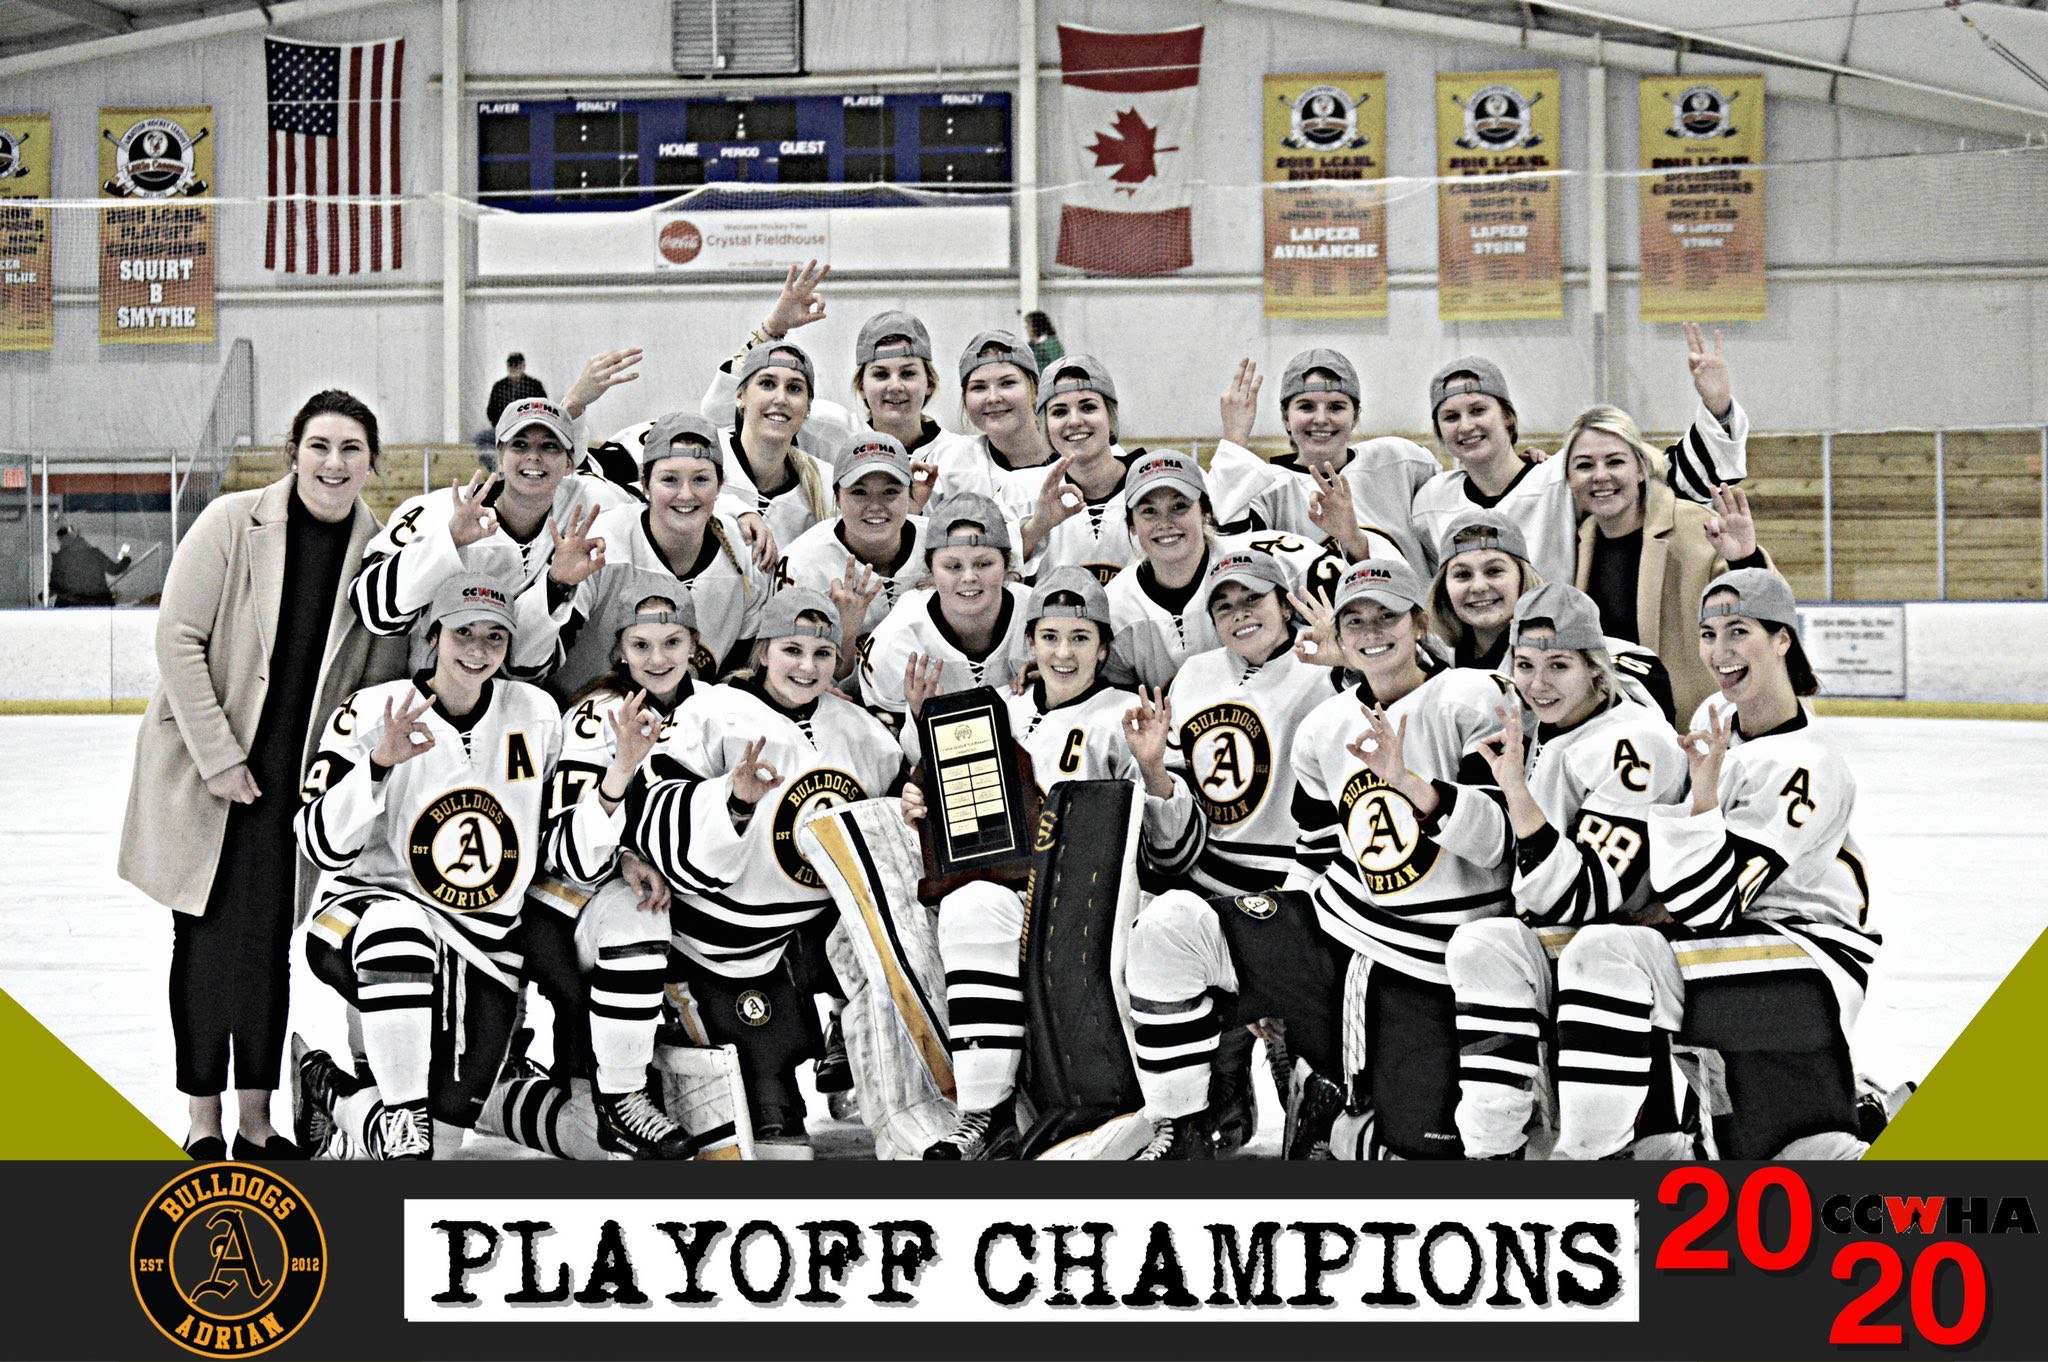 2020 CCWHA D1 Champs!